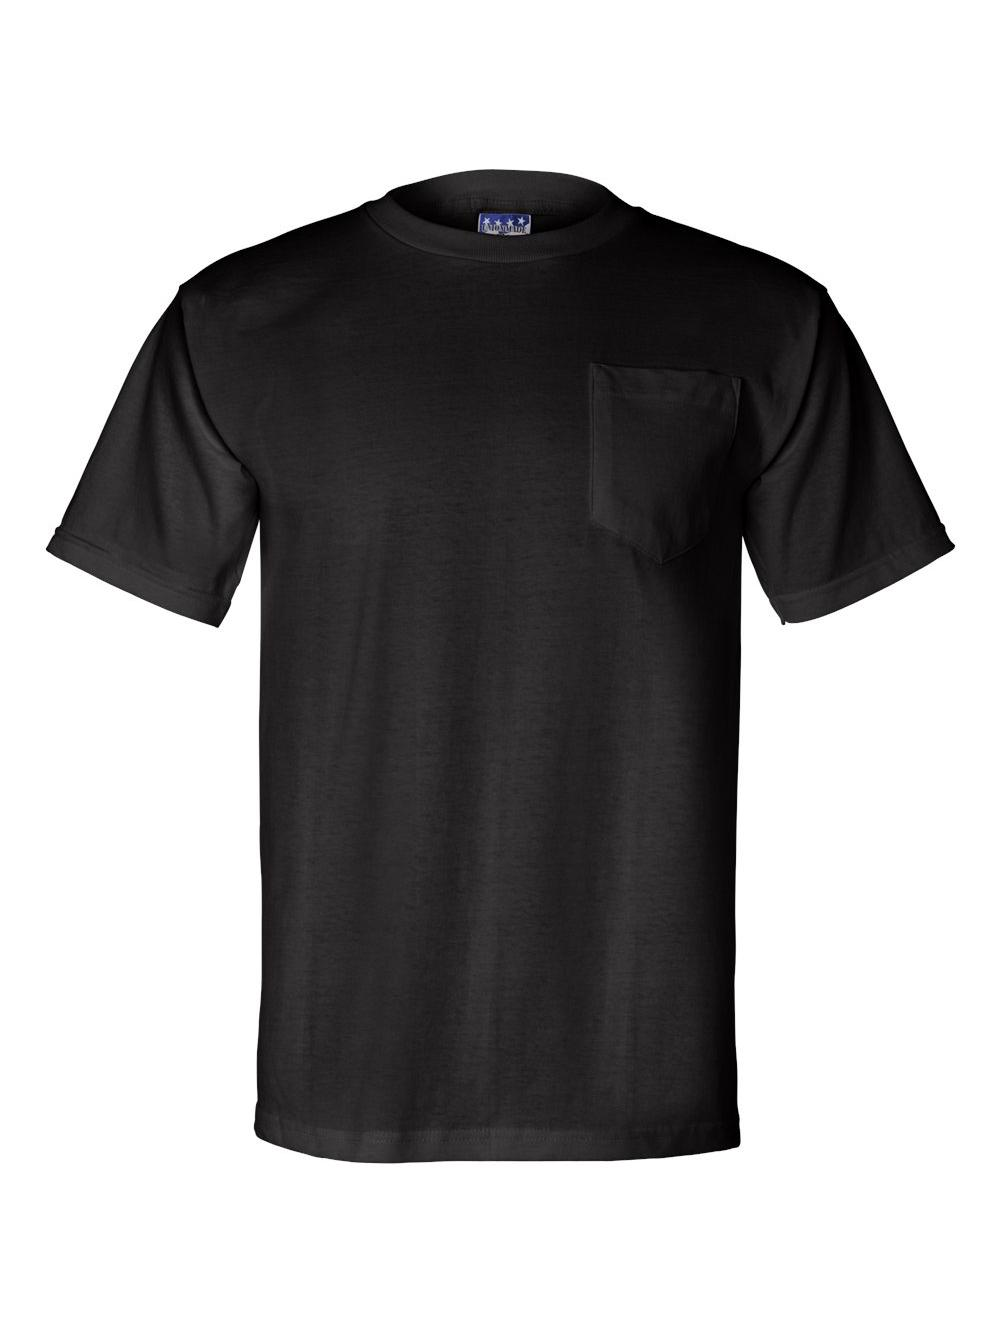 Bayside-Union-Made-Short-Sleeve-T-Shirt-with-a-Pocket-3015 thumbnail 6